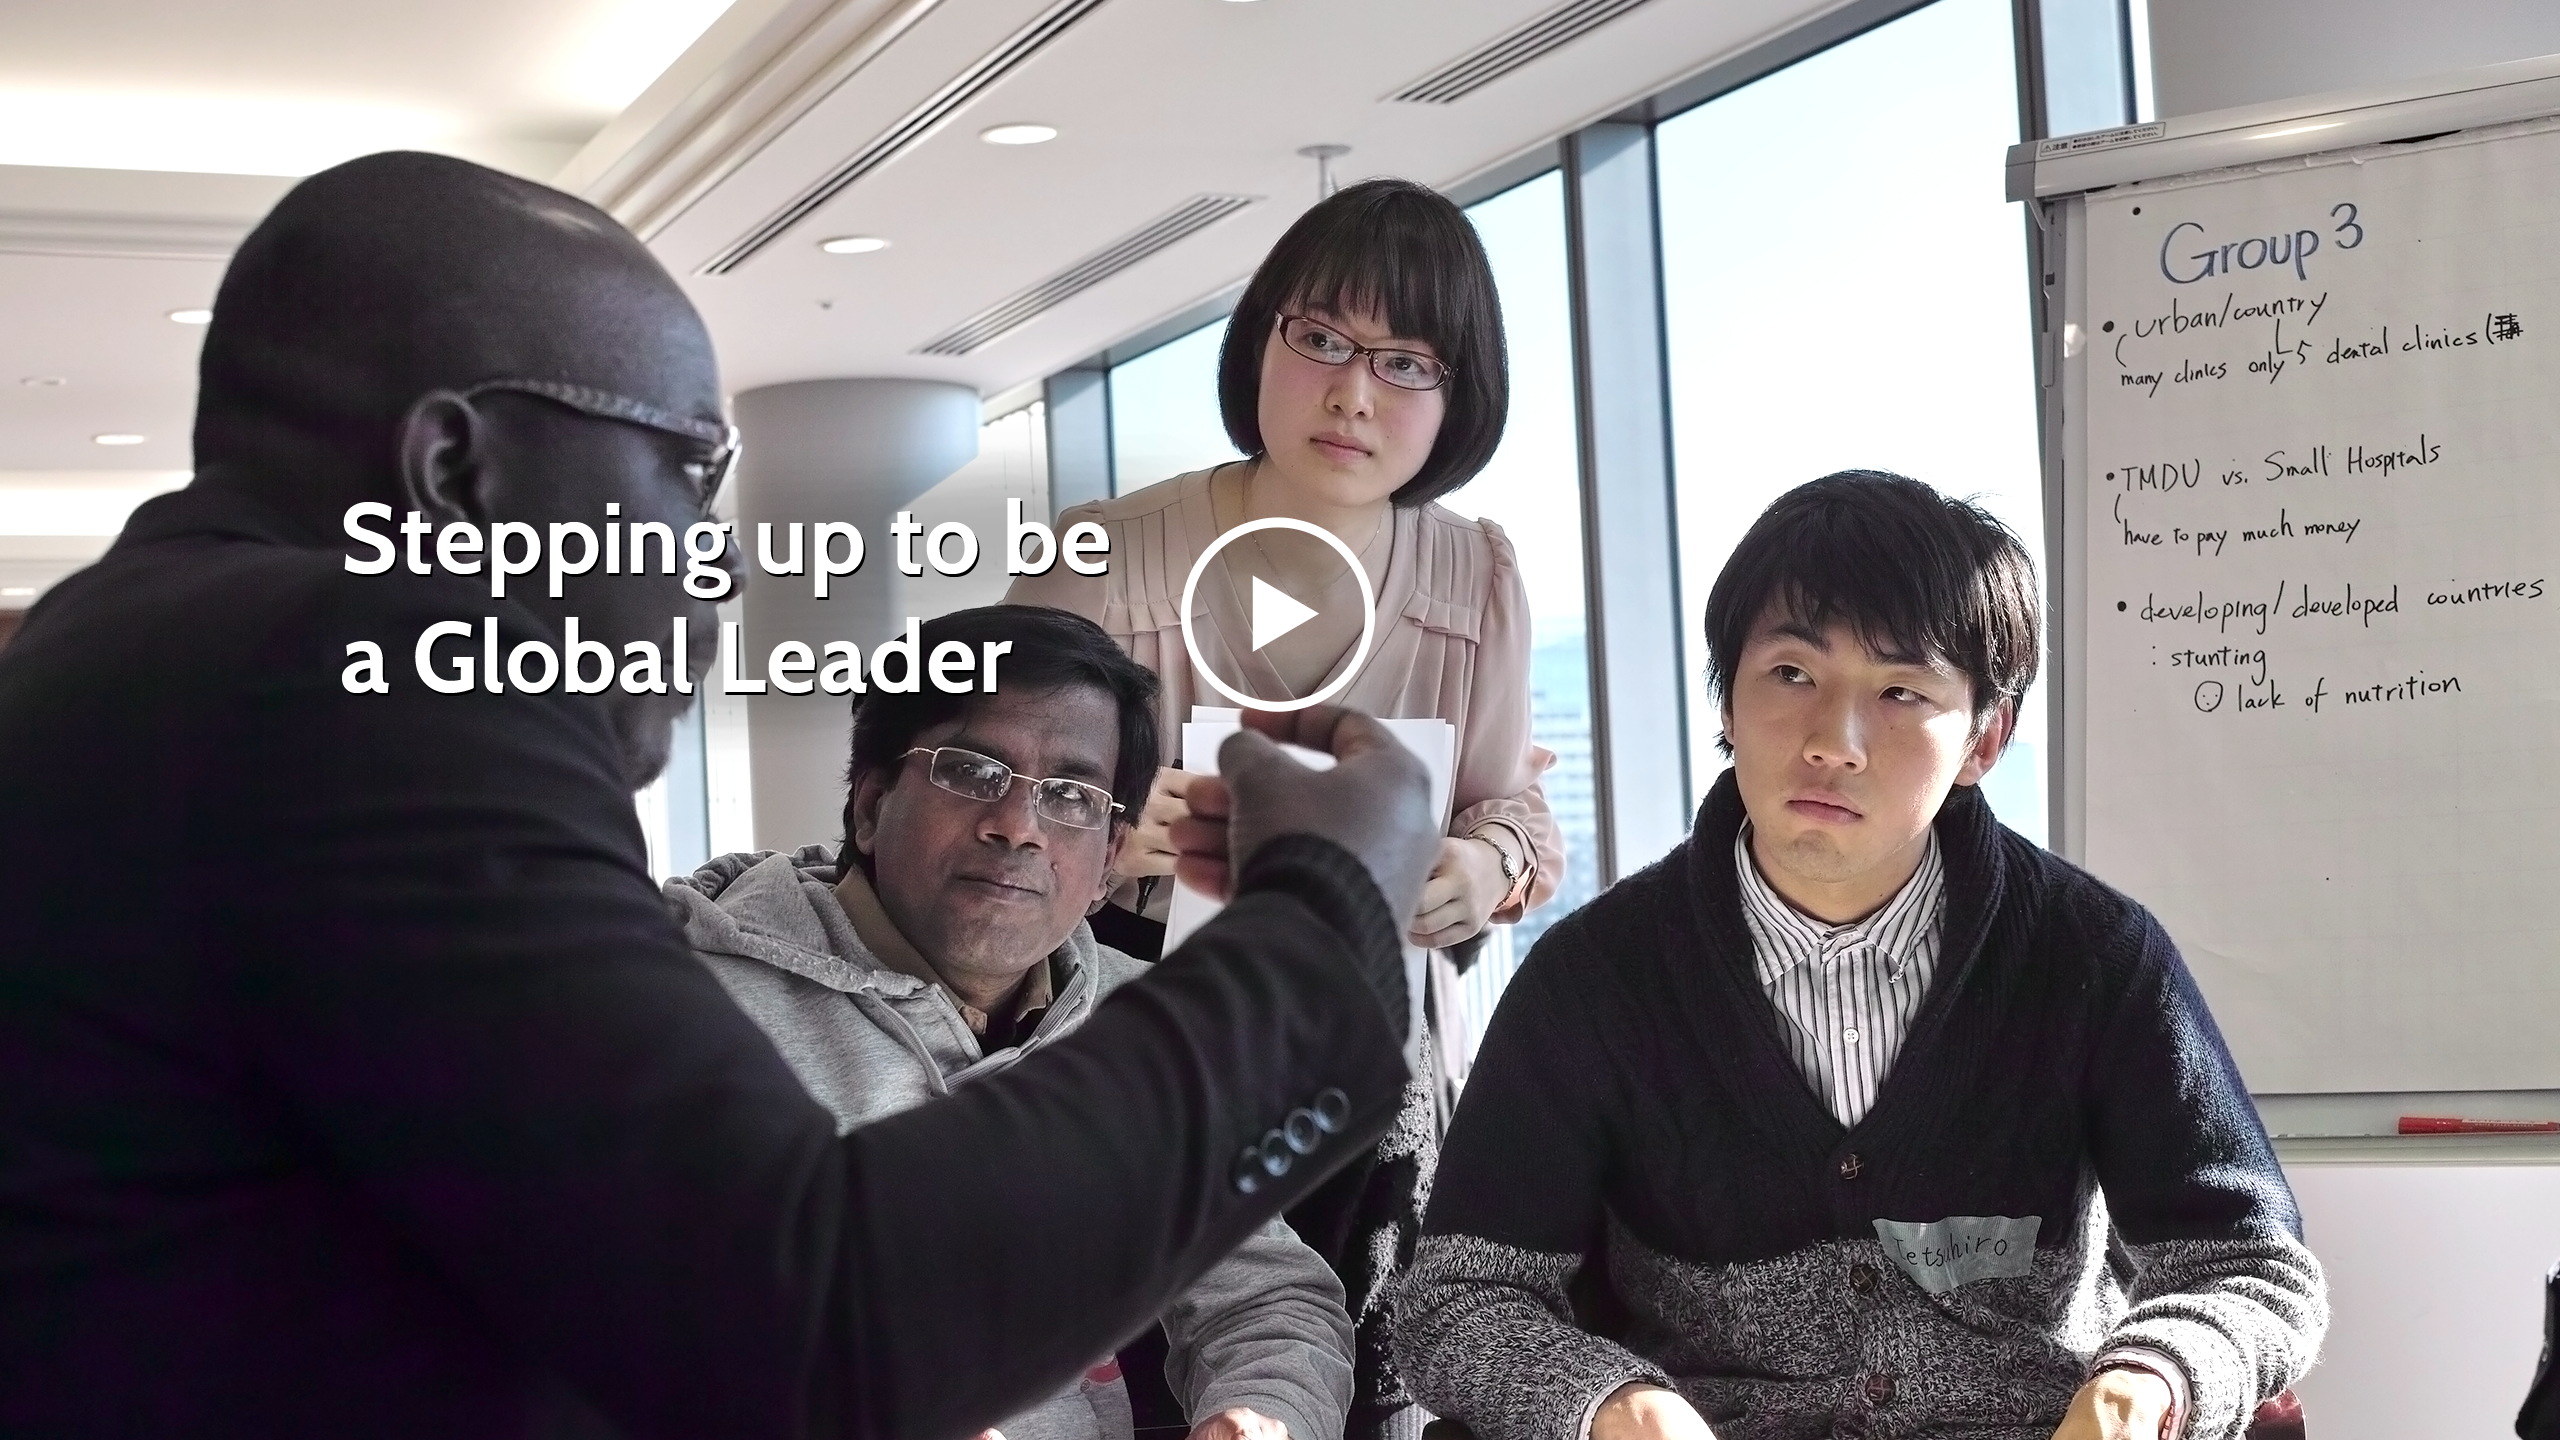 Stepping up to be a Global Leader